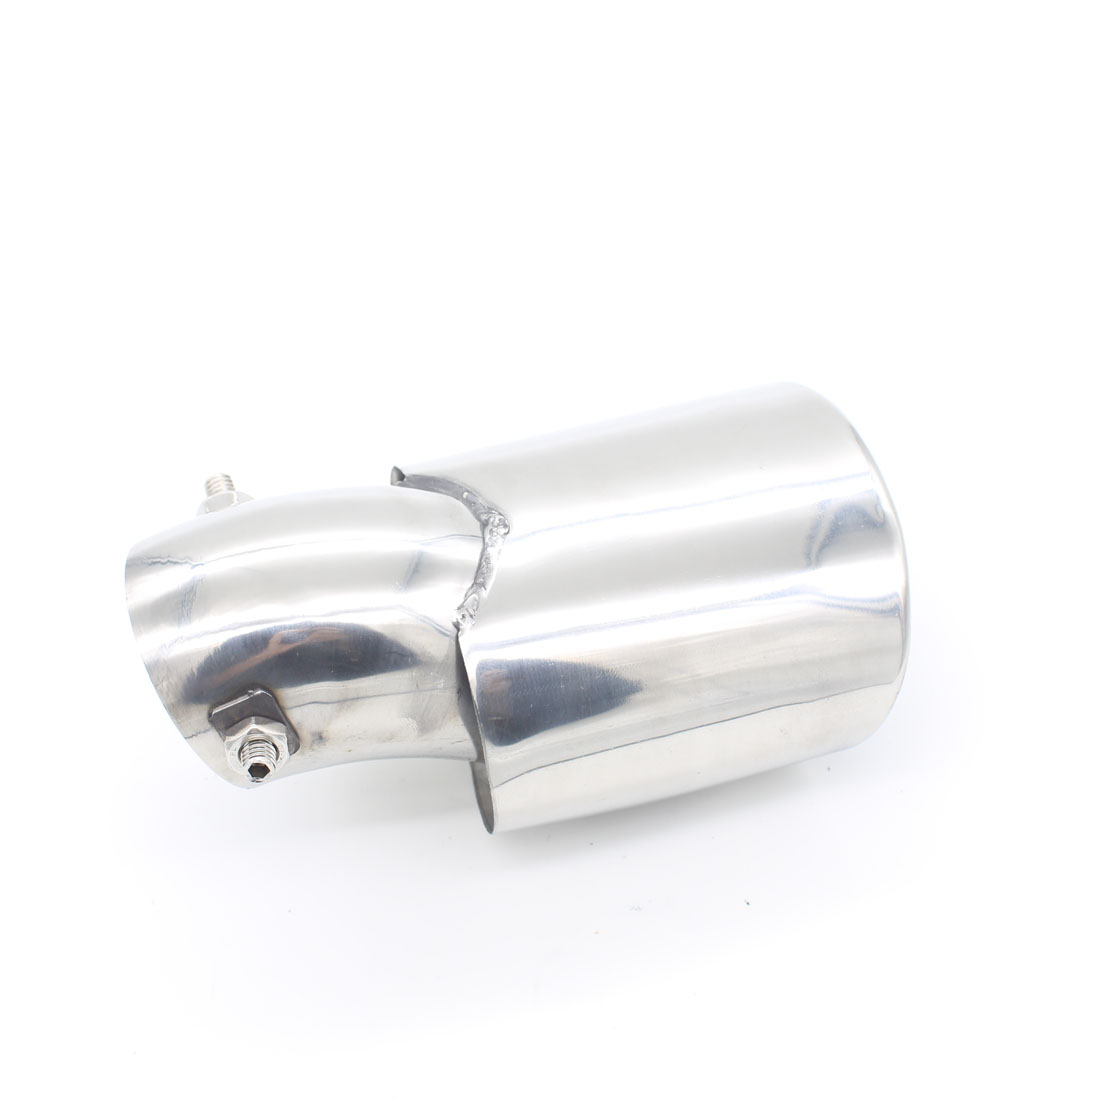 Dongzhen Chrome Stainless Steel Car Exhaust Pipe Fit For Chevrolet Cruze Tail Muffler Hot Sale Car Accessories TipTail Pipe